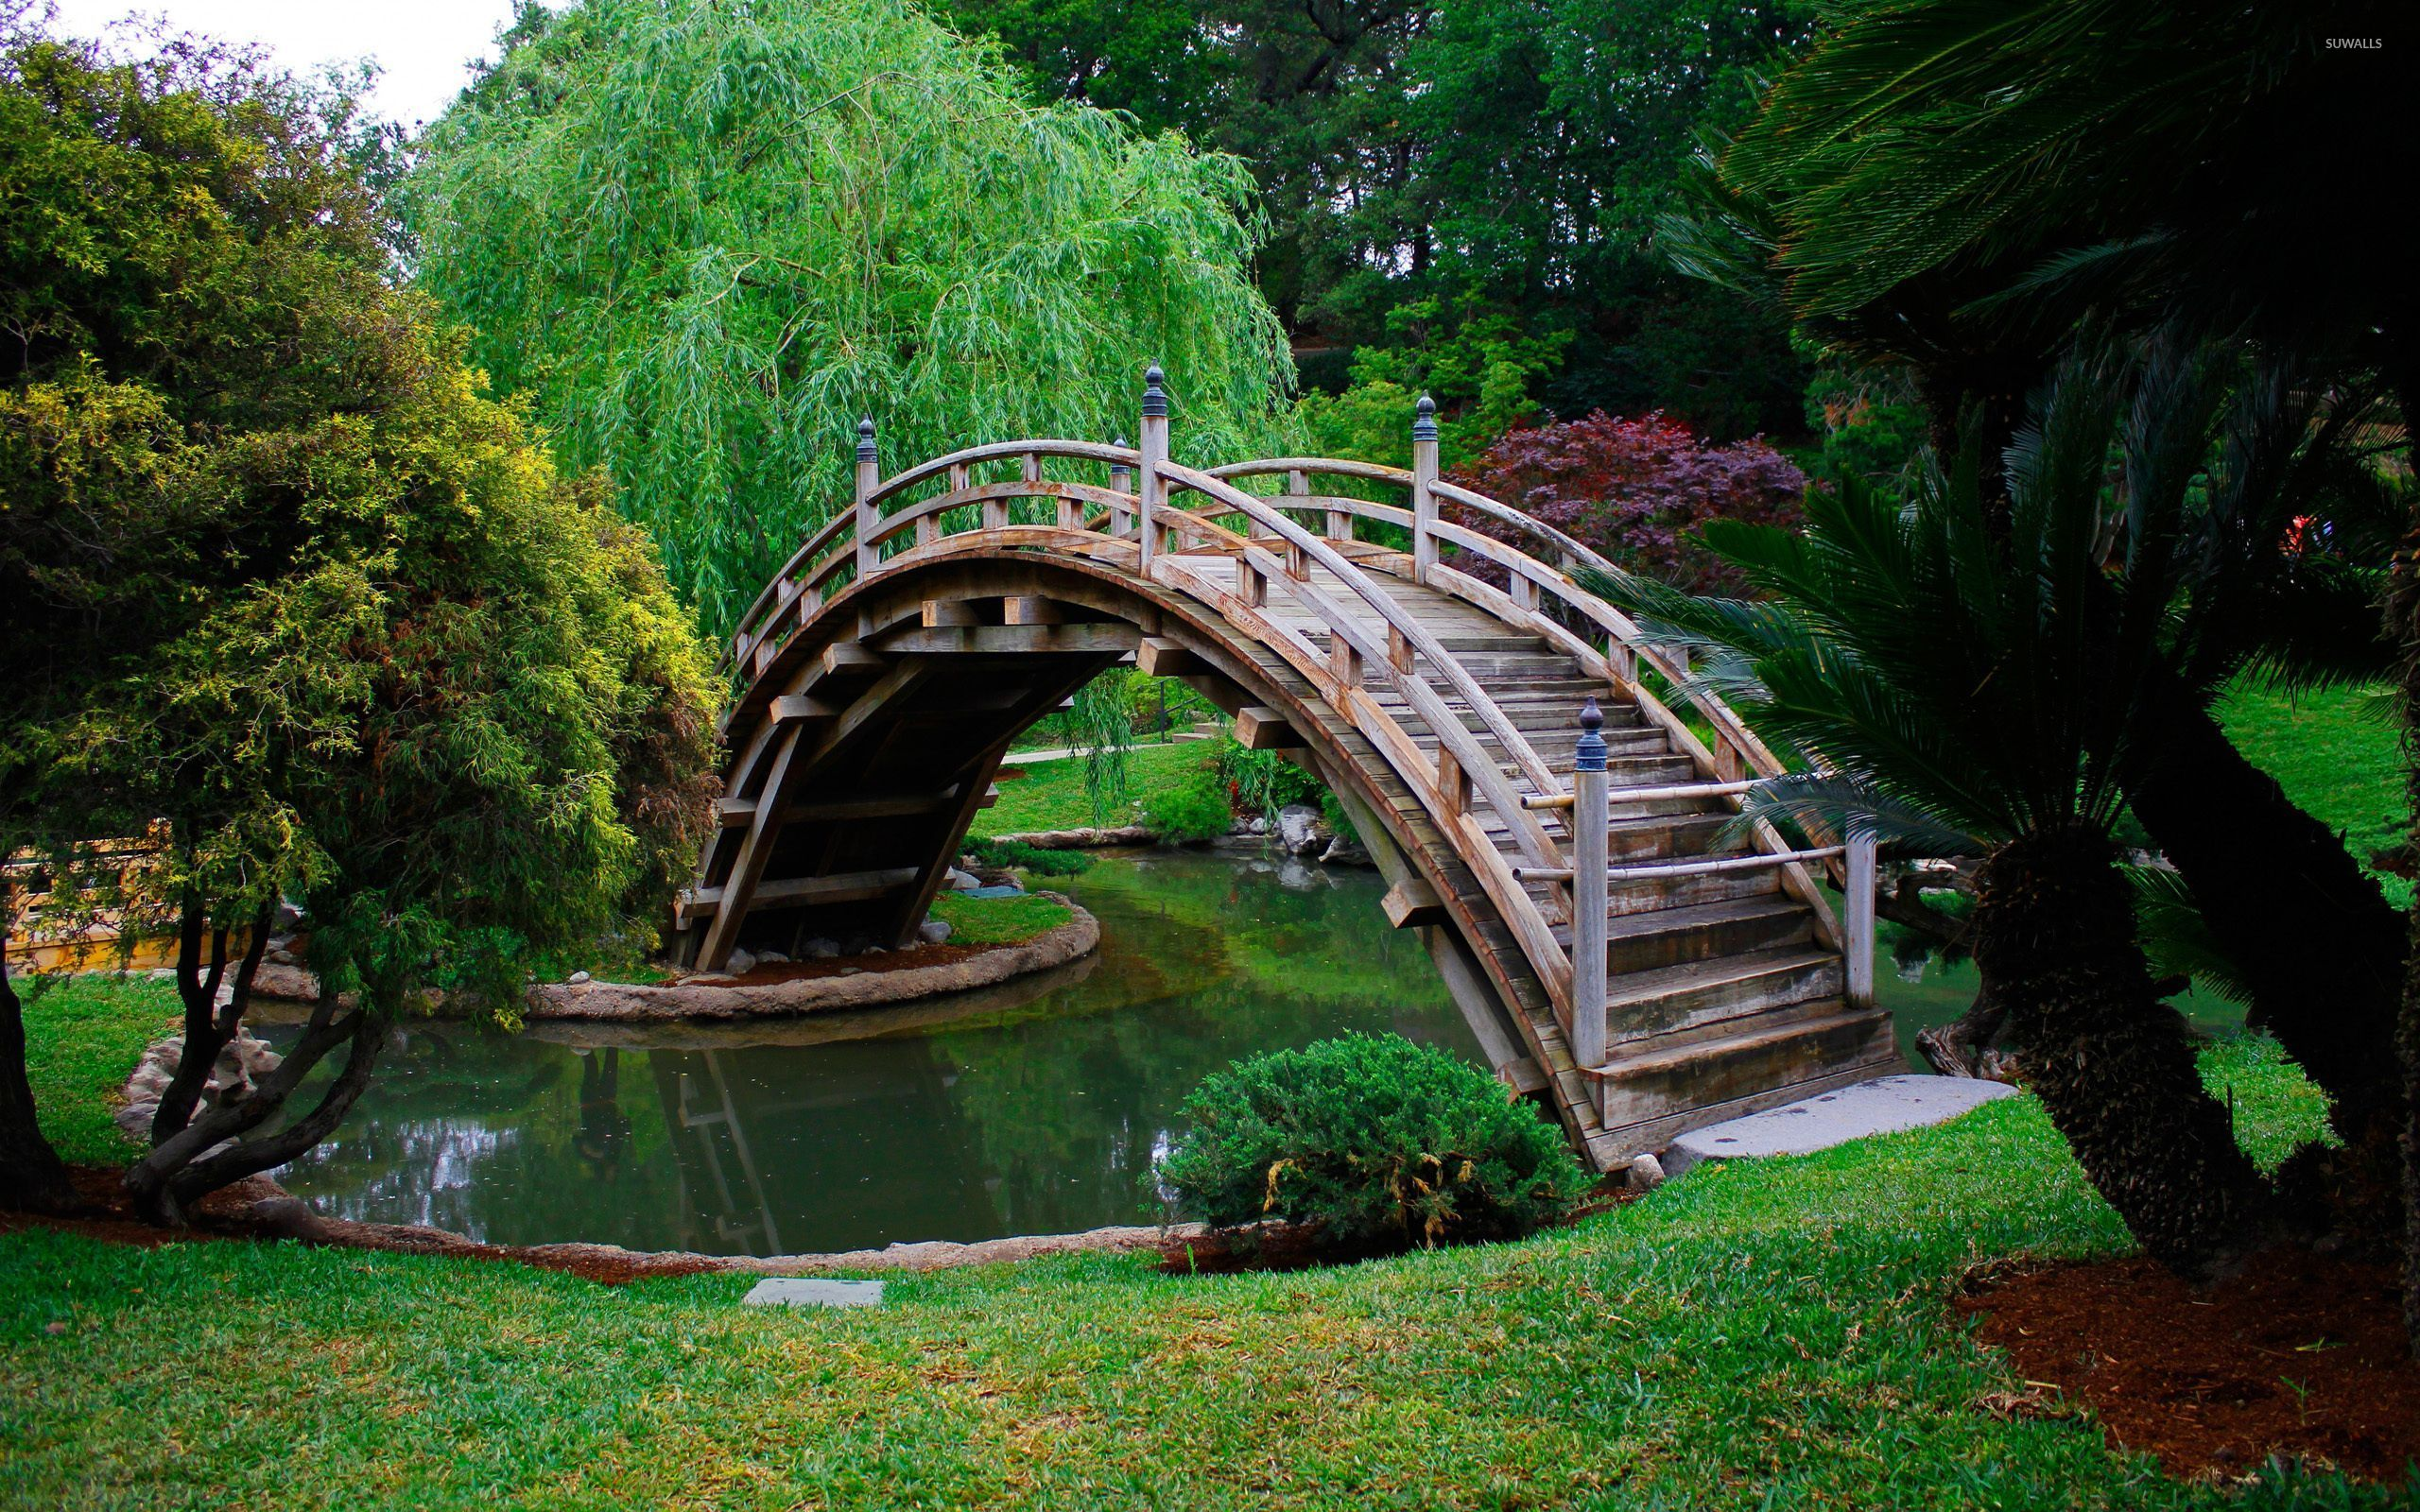 Genial Wooden Bridge In A Japanese Garden Wallpaper